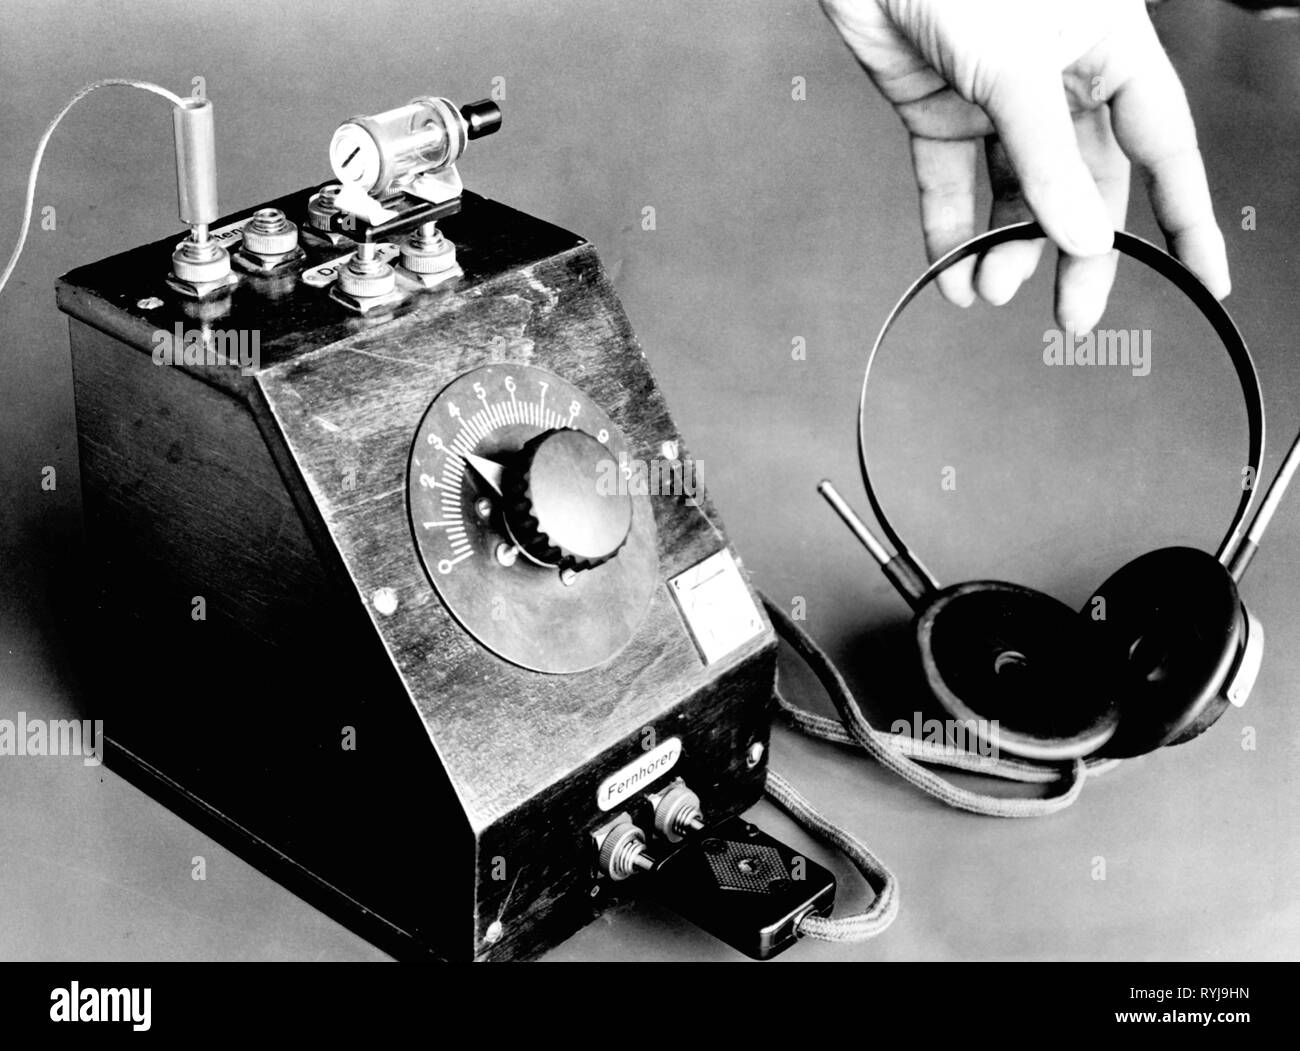 Broadcast Black And White Stock Photos Images Alamy